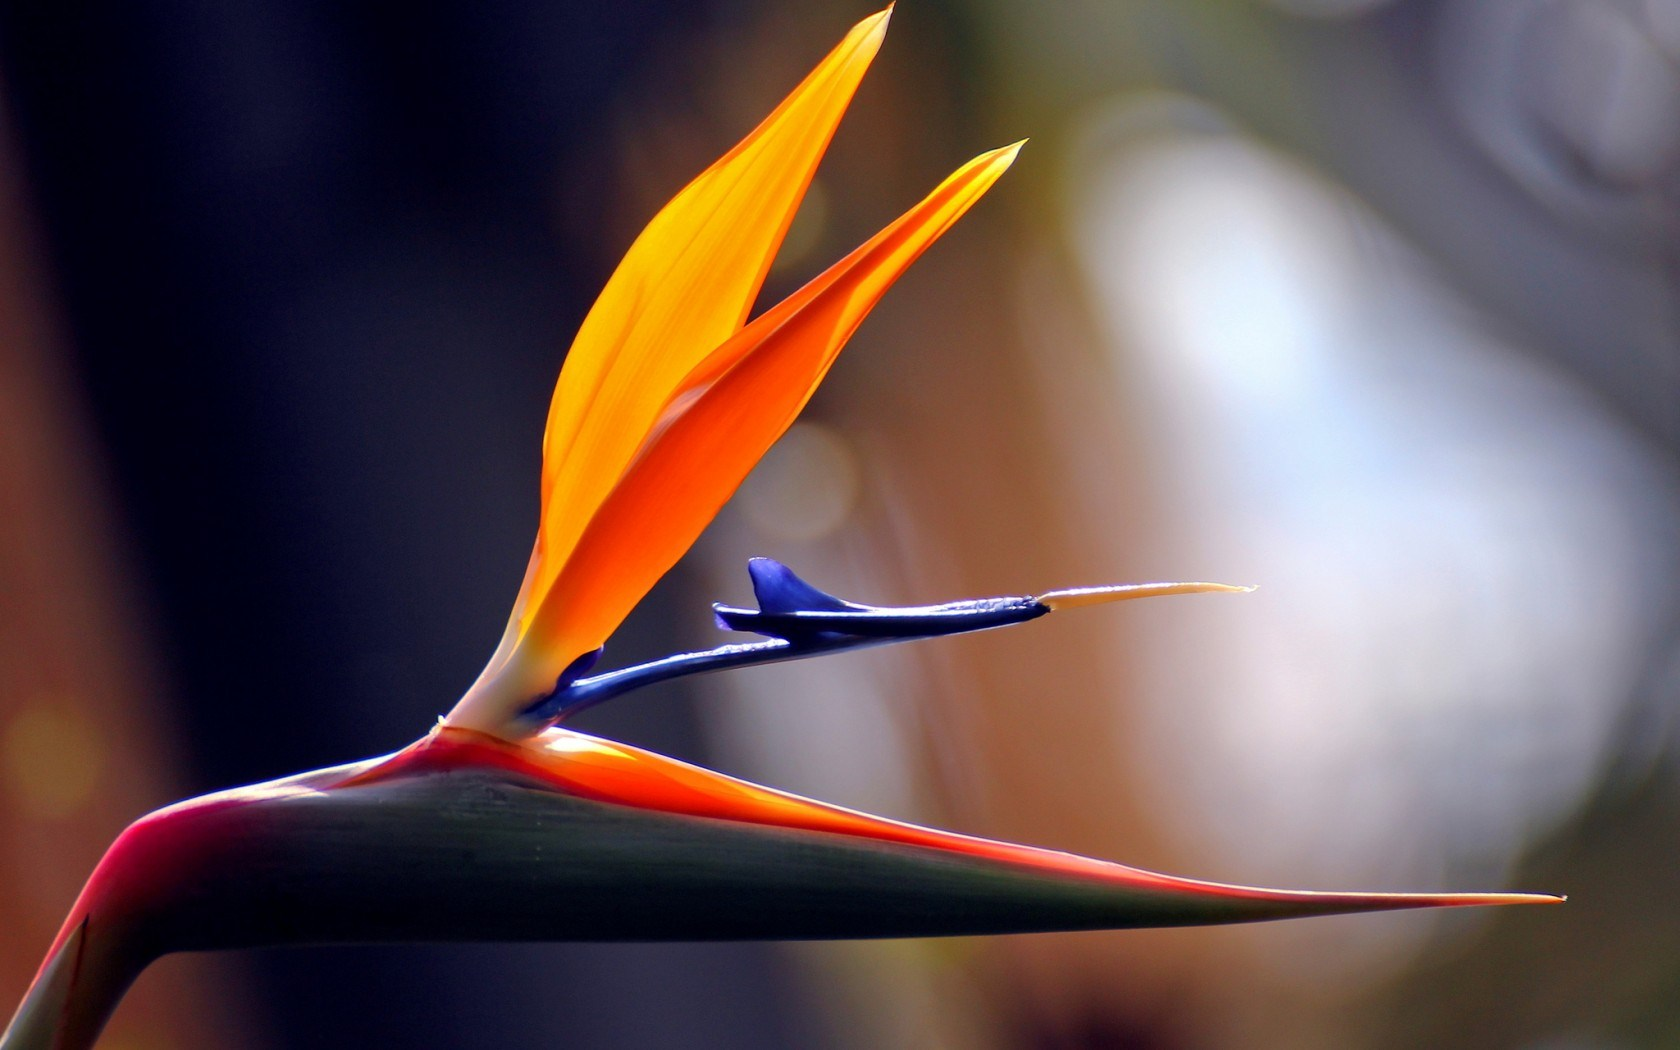 4 hd bird of paradise flowers wallpapers - Hd images of birds of paradise ...